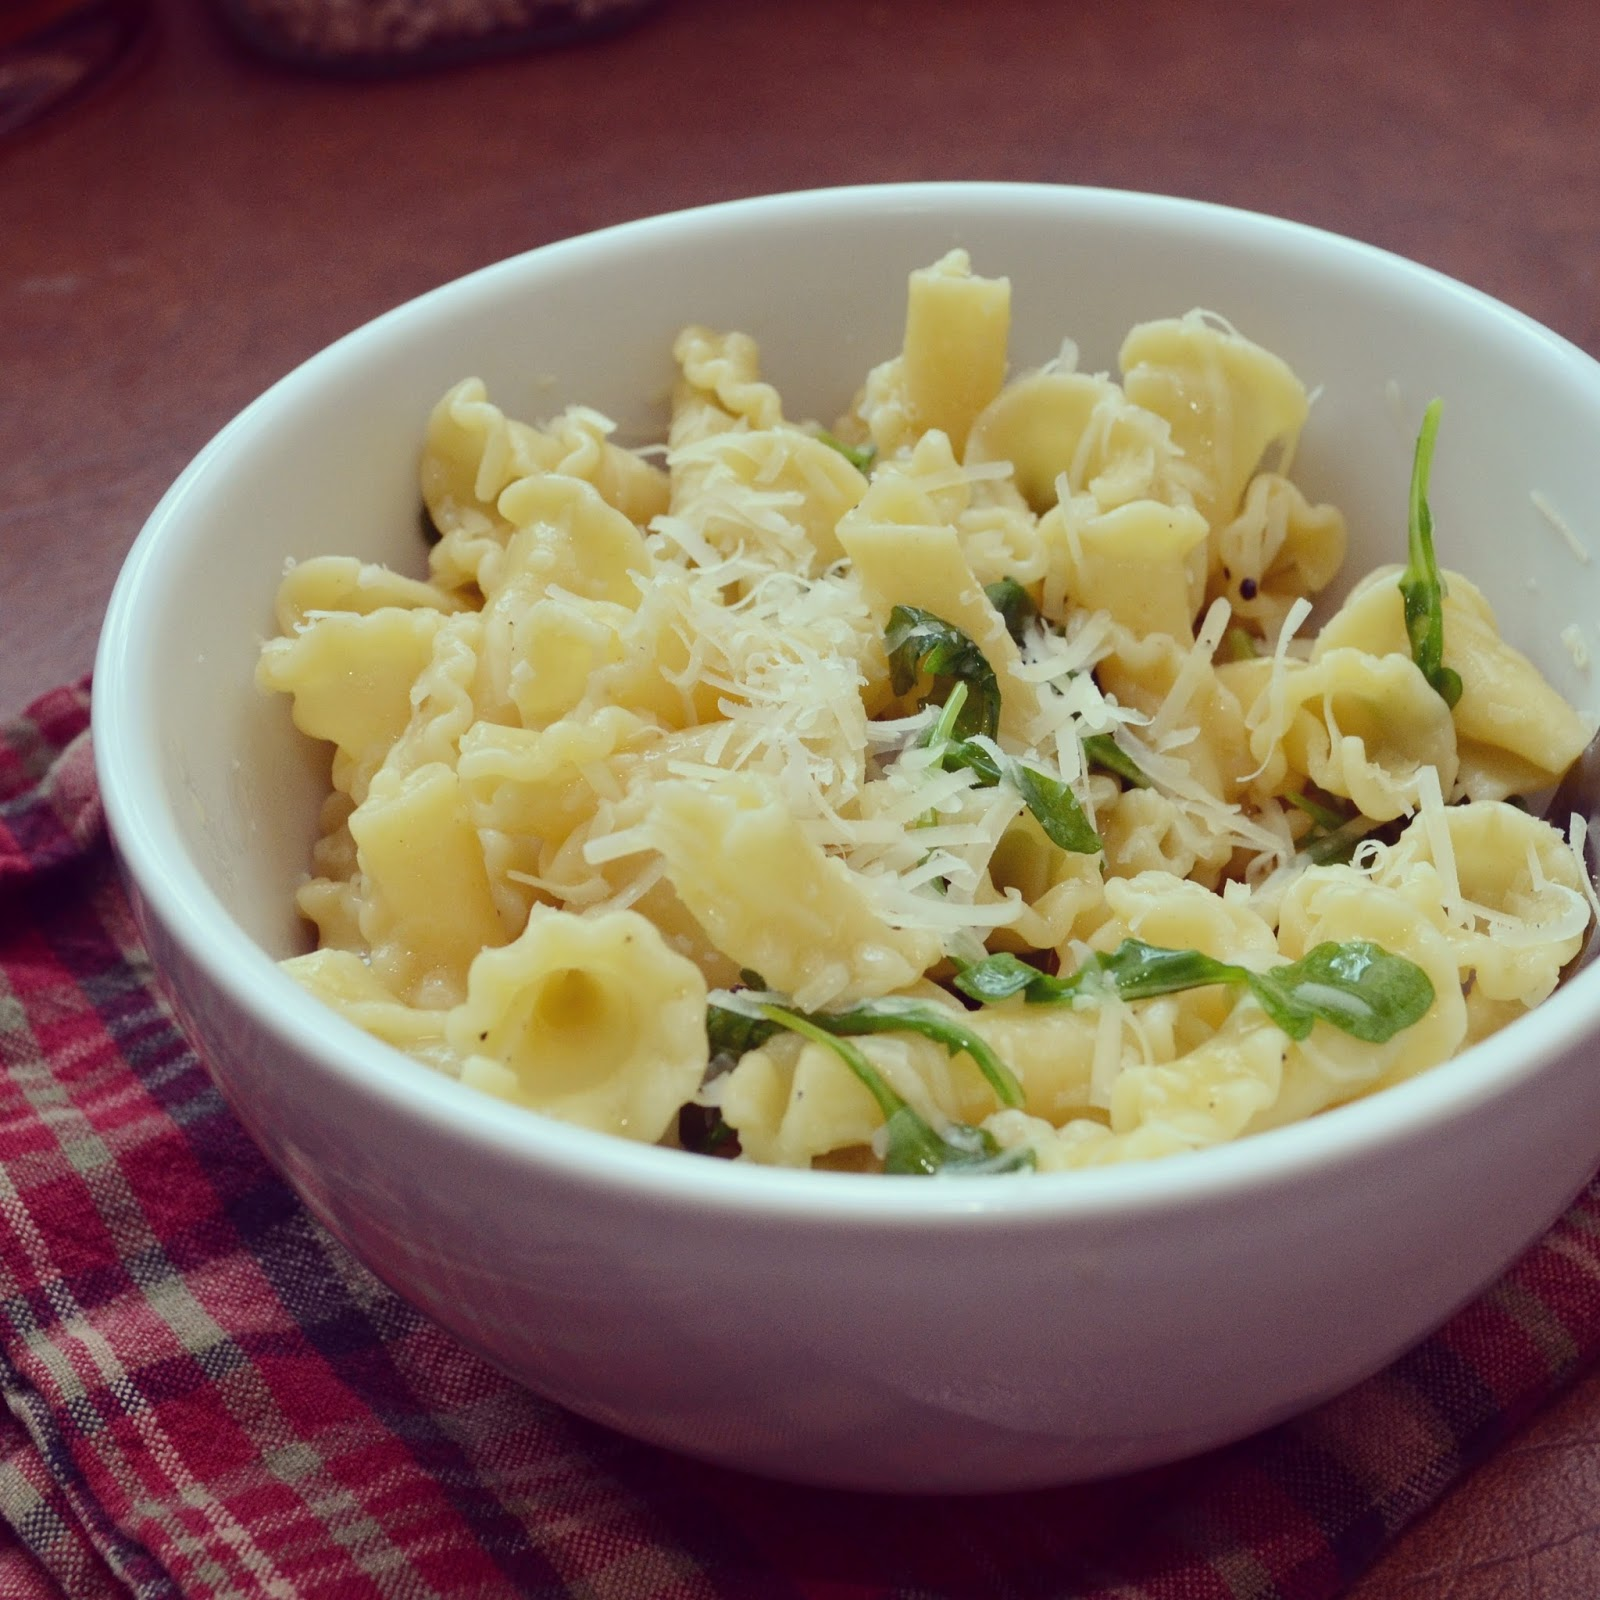 Truffle Butter Pasta a texas belle: lemon arugula pasta with truffle butter